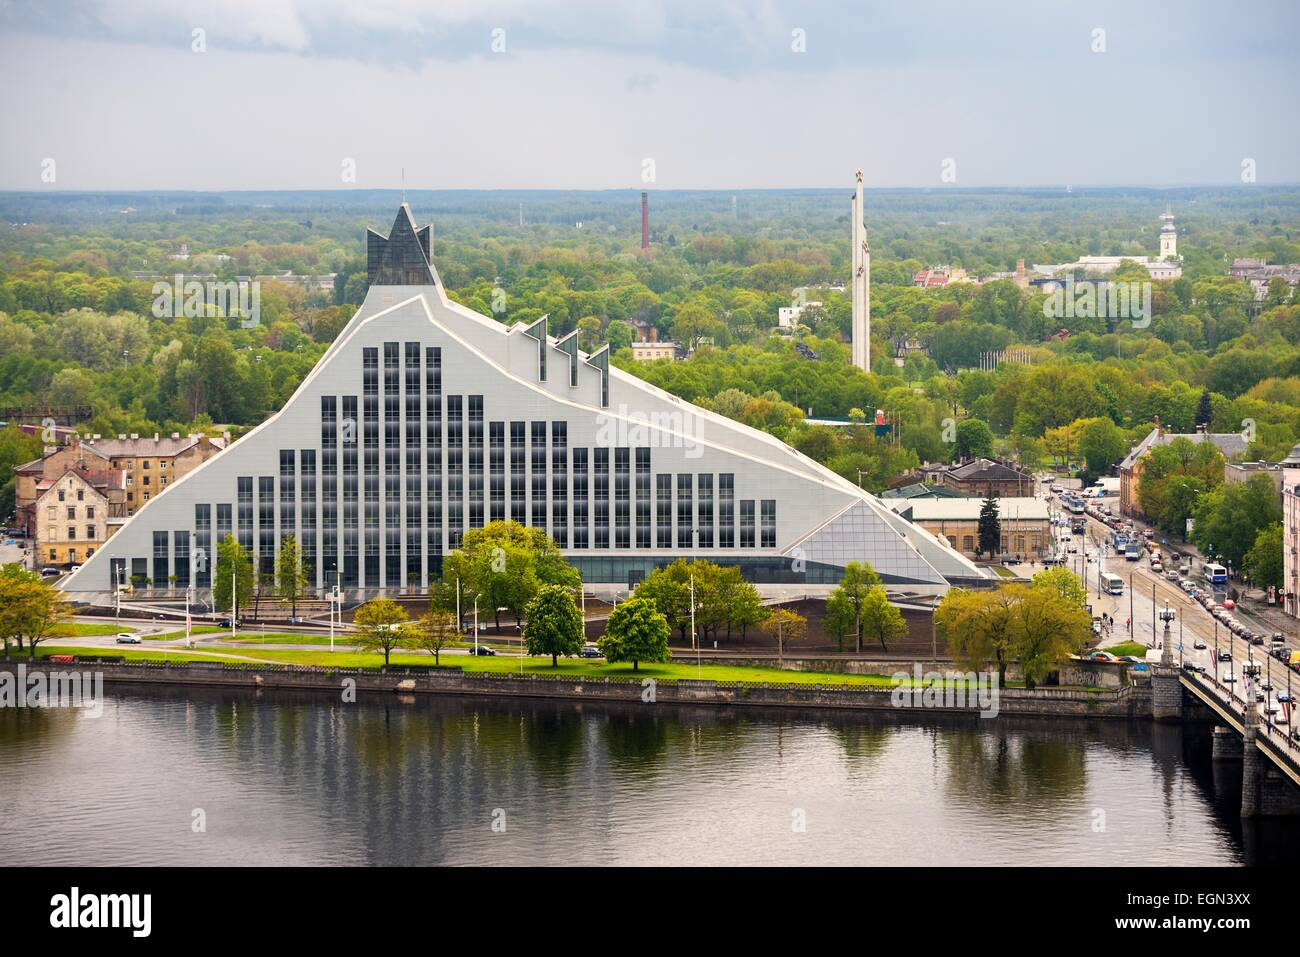 Riga, Latvia. The Latvian National Library seen after completion in summer 2014. SW across the Daugava River - Stock Image